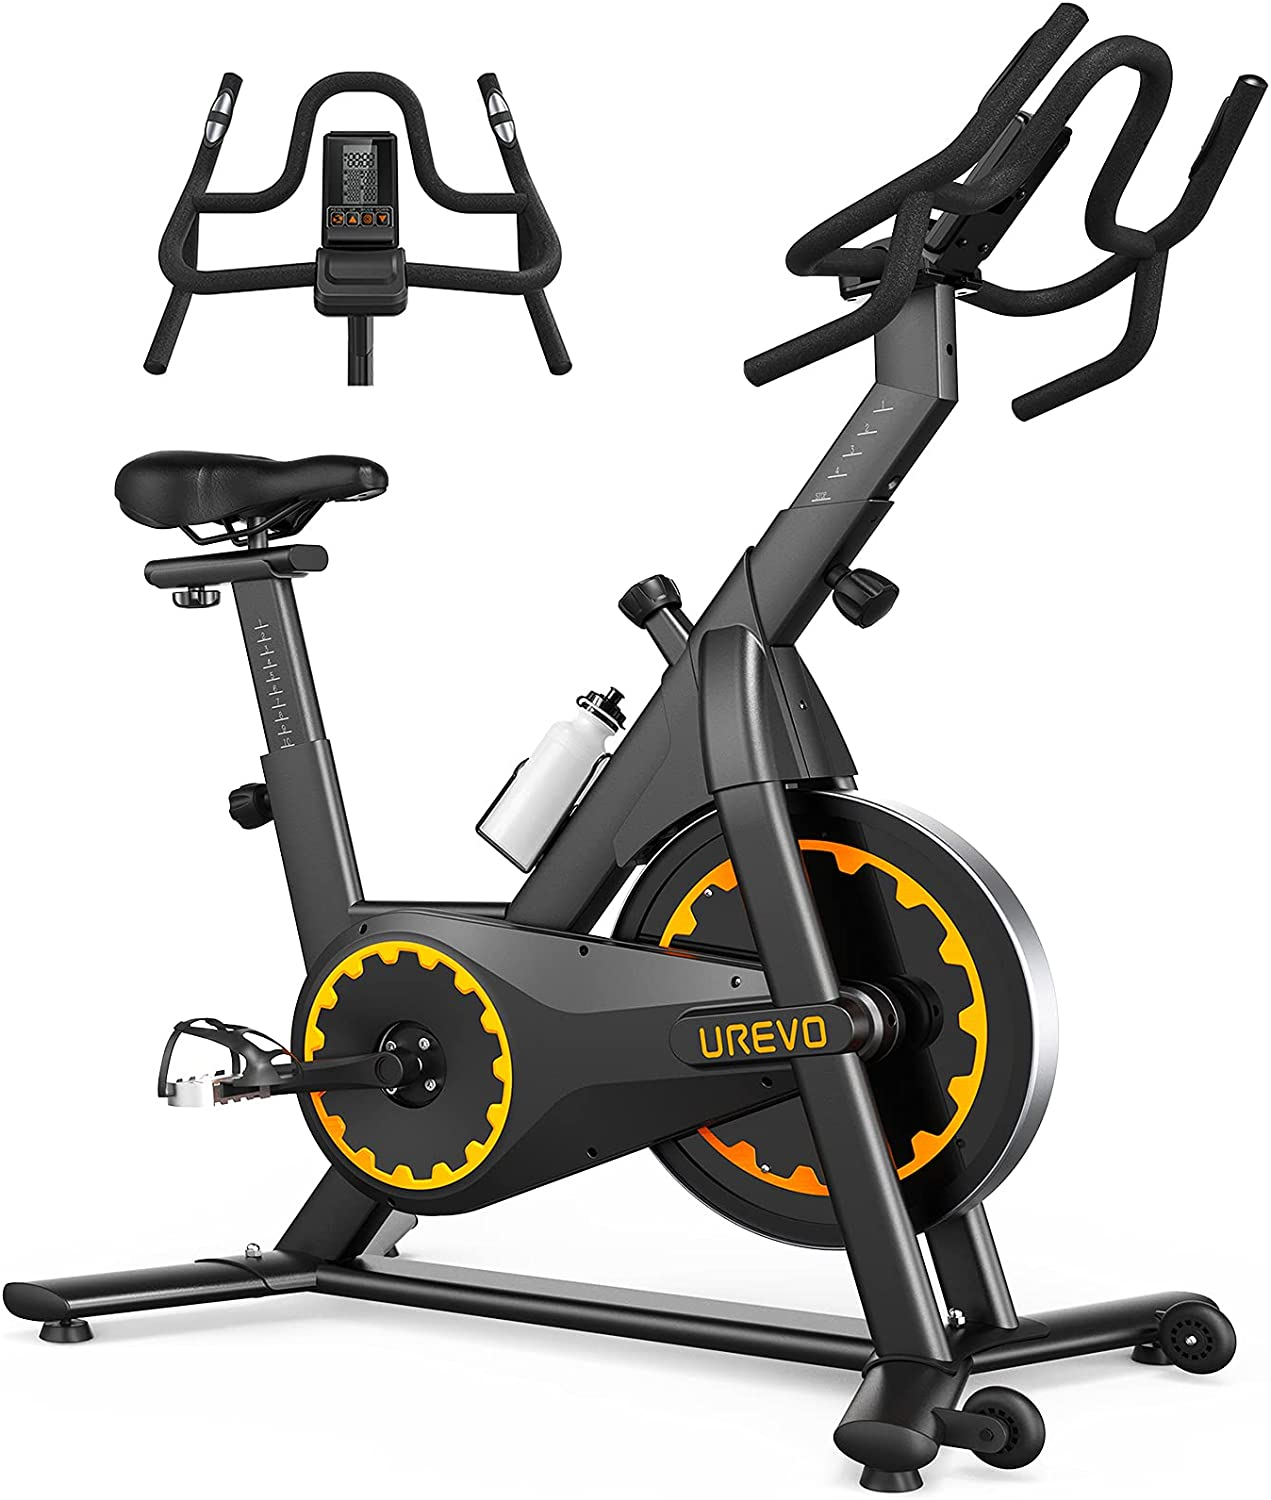 UREVO Exercise Bike Stationary, Indoor Cycling Bike Belt Drive for Home Gym Comfortable Seat, Exercise Workout Machine 35 LBS Flywheel Belt Drive with Zwift Bluetooth APP, Heart Rate & Tablet Holder